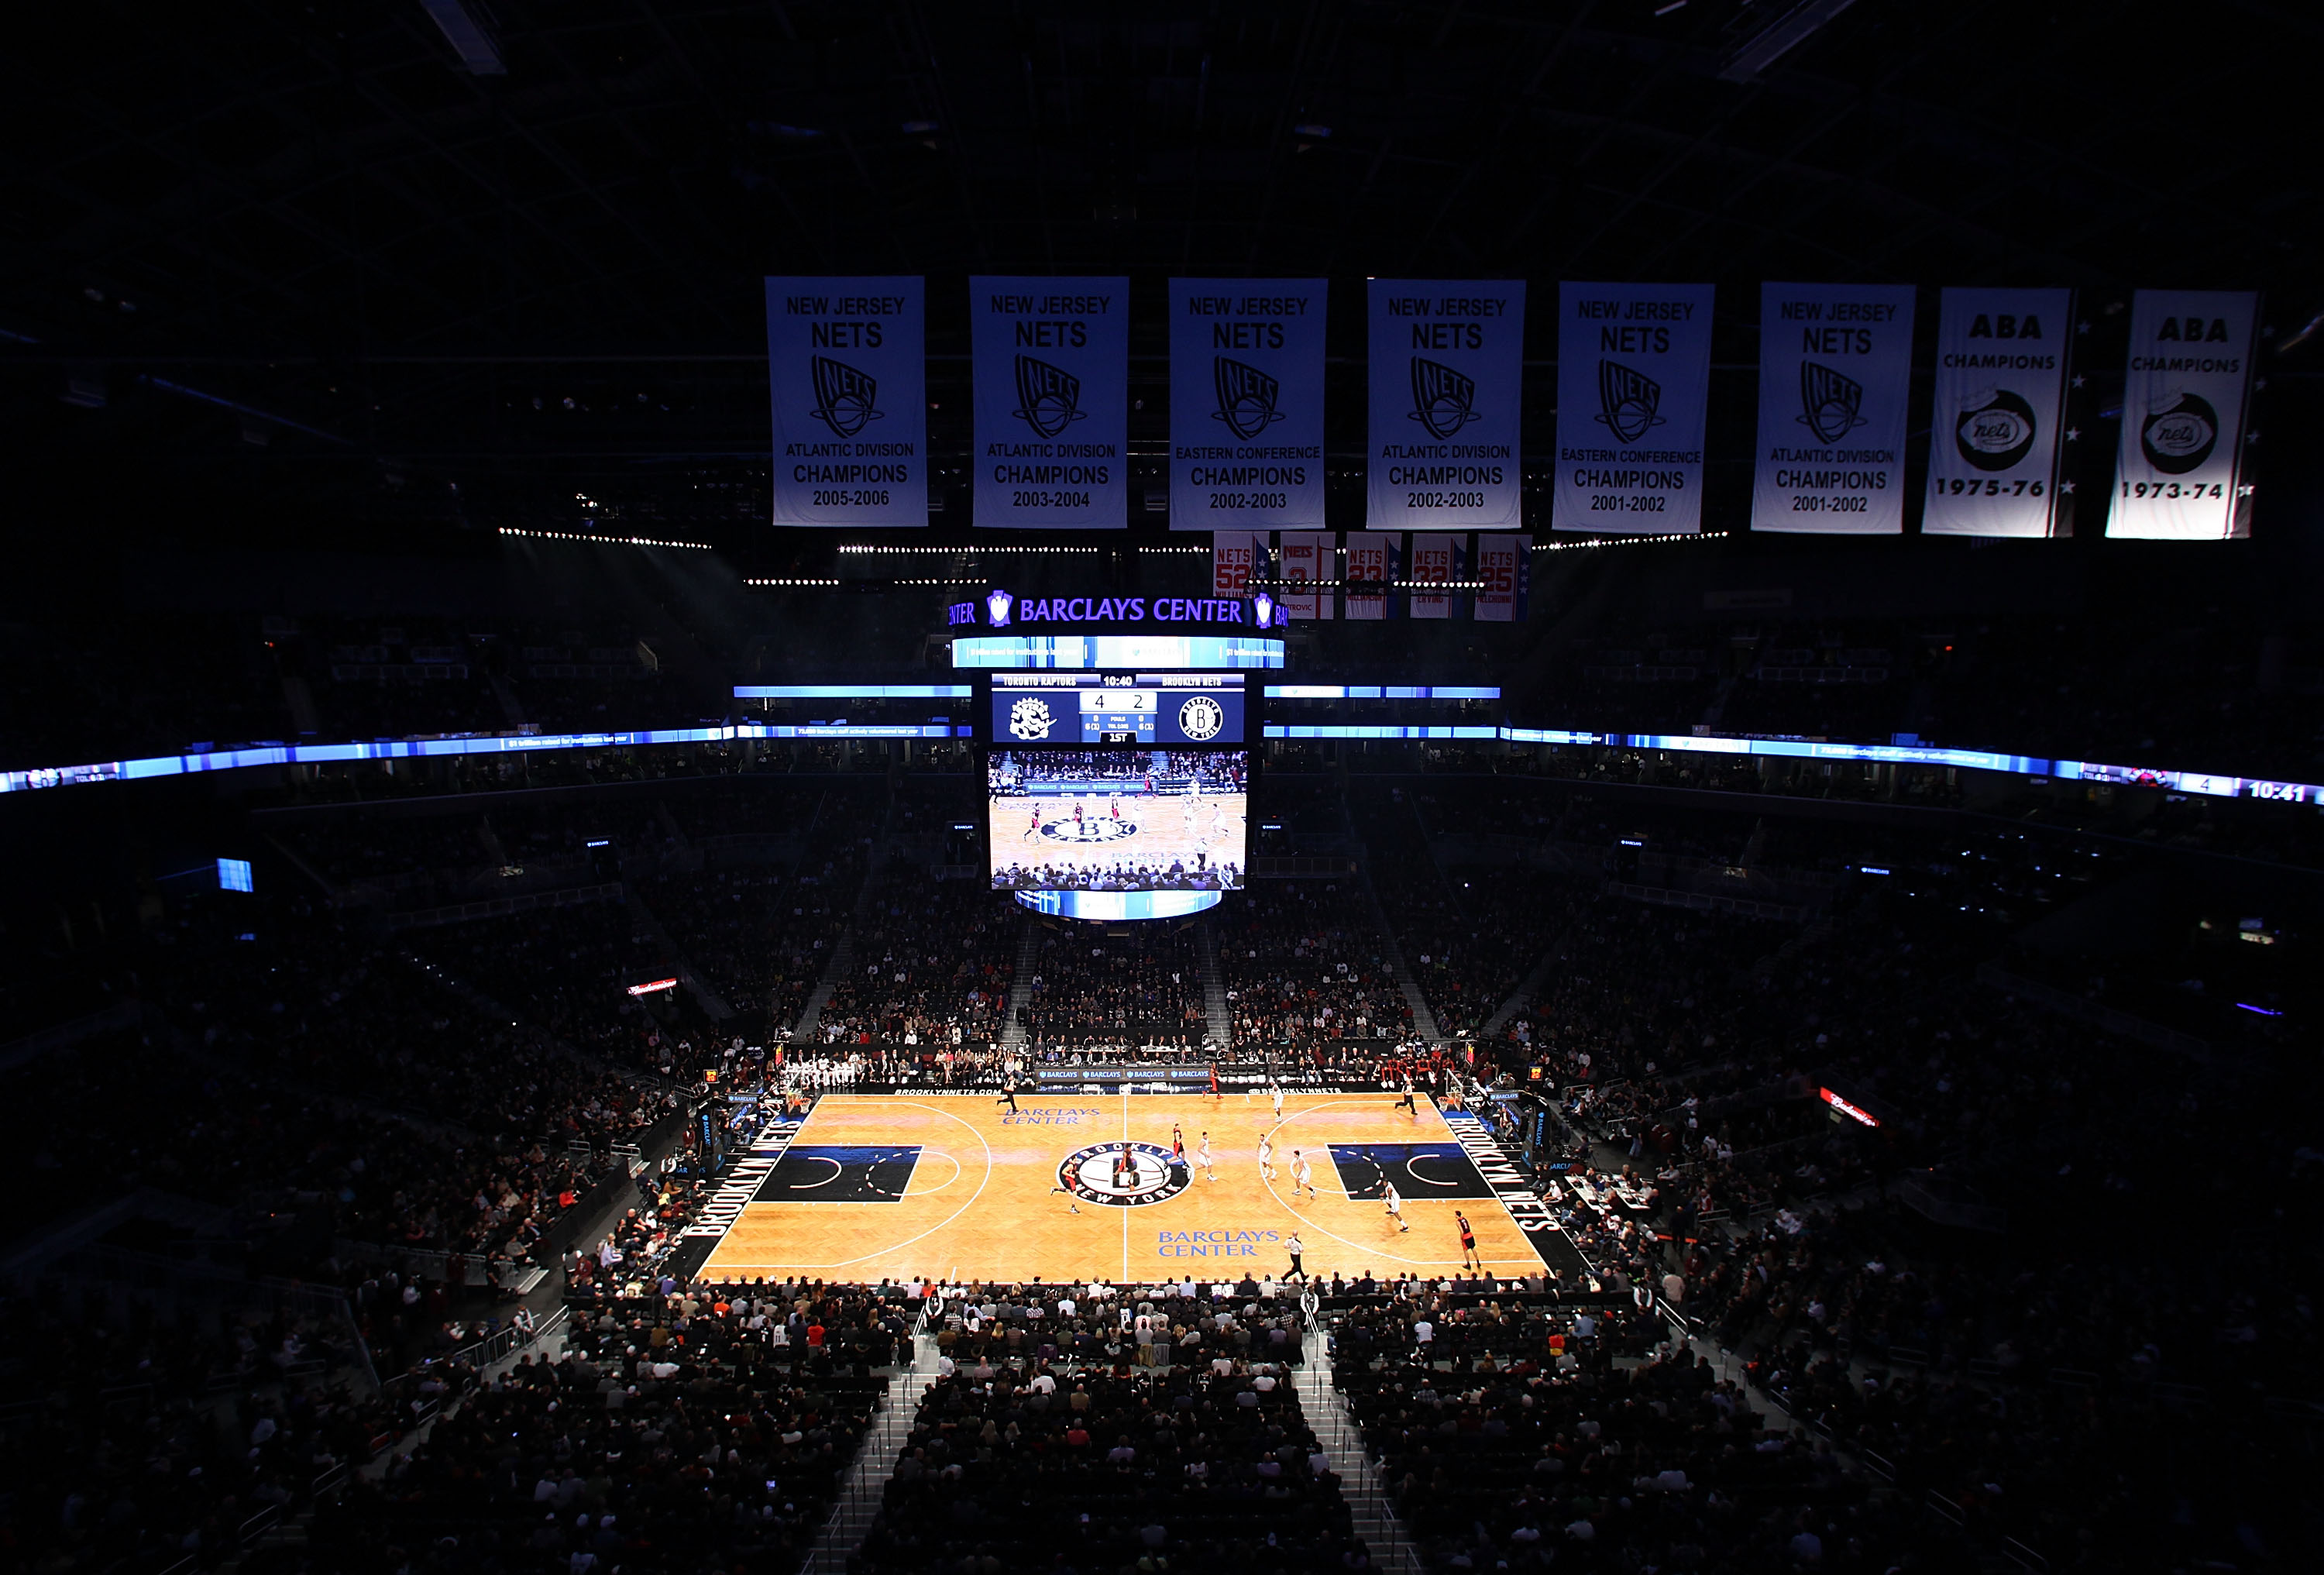 The interior of Barclays Center.